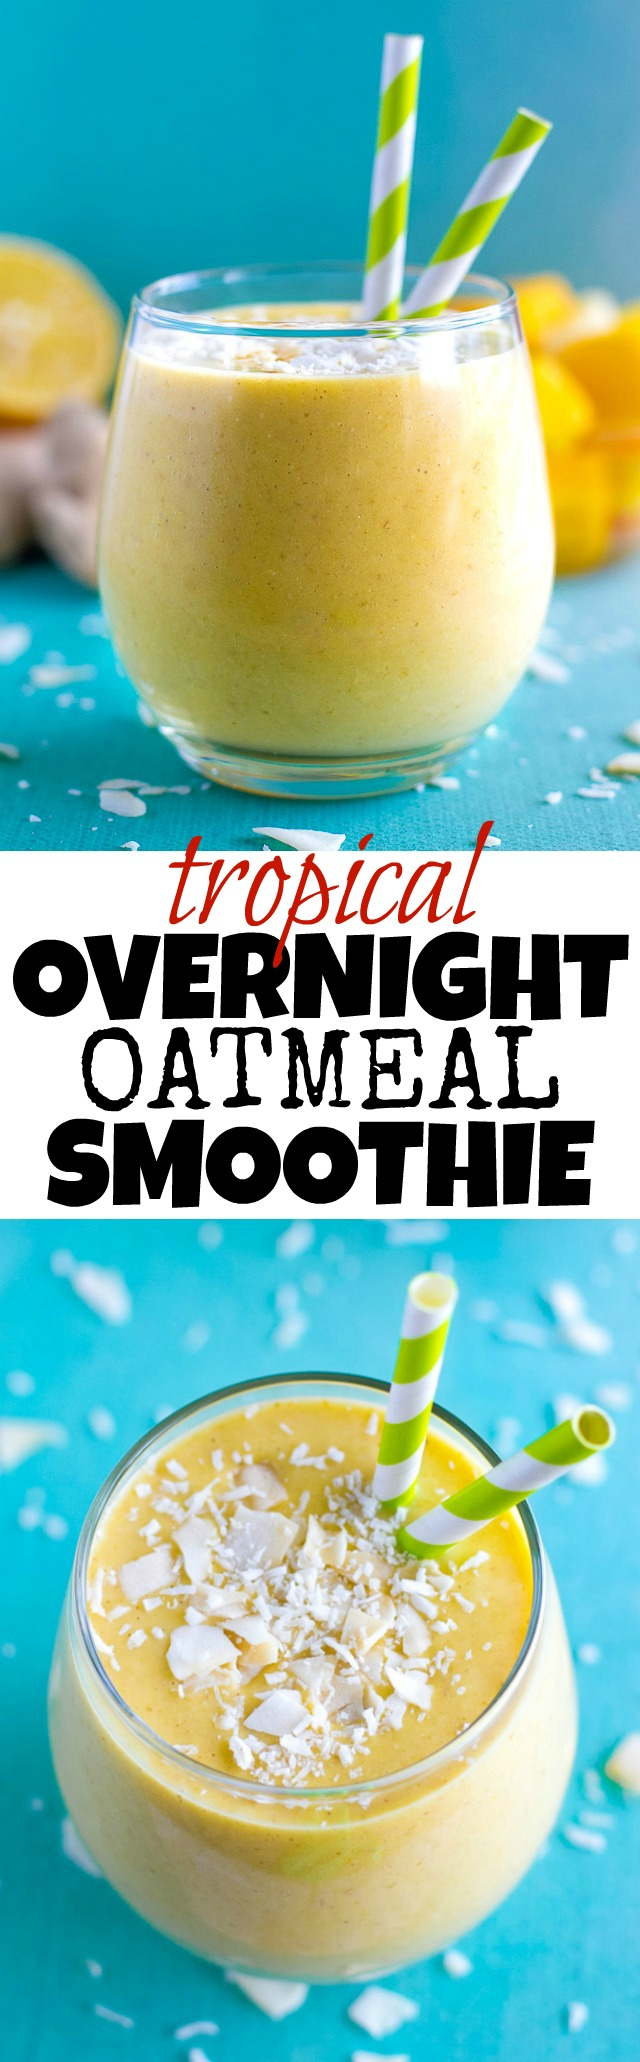 Tropical Overnight Oatmeal Smoothie - the mouthwatering flavours of mango, pineapple, and coconut in a refreshing gluten-free and vegan smoothie that makes a perfect breakfast or snack! | runningwithspoons.com #recipe #healthy